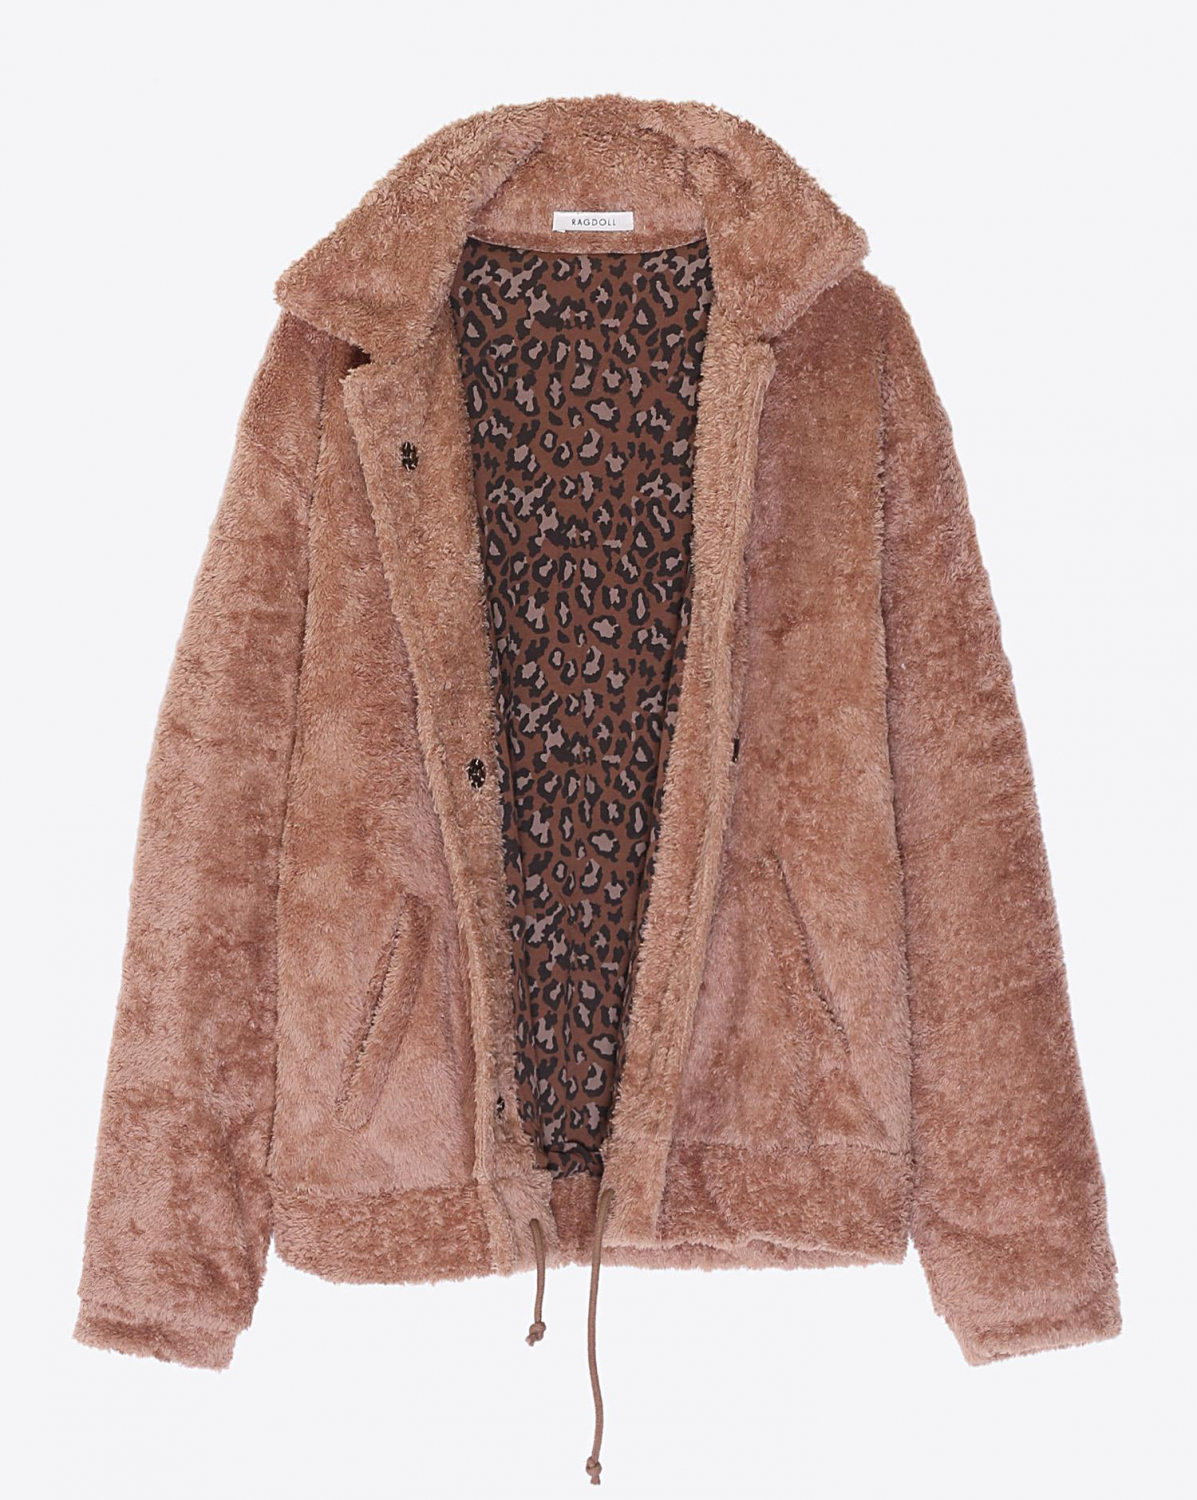 Ragdoll LA Teddy Bomber Jacket Camel  Reversible Brown Leopard